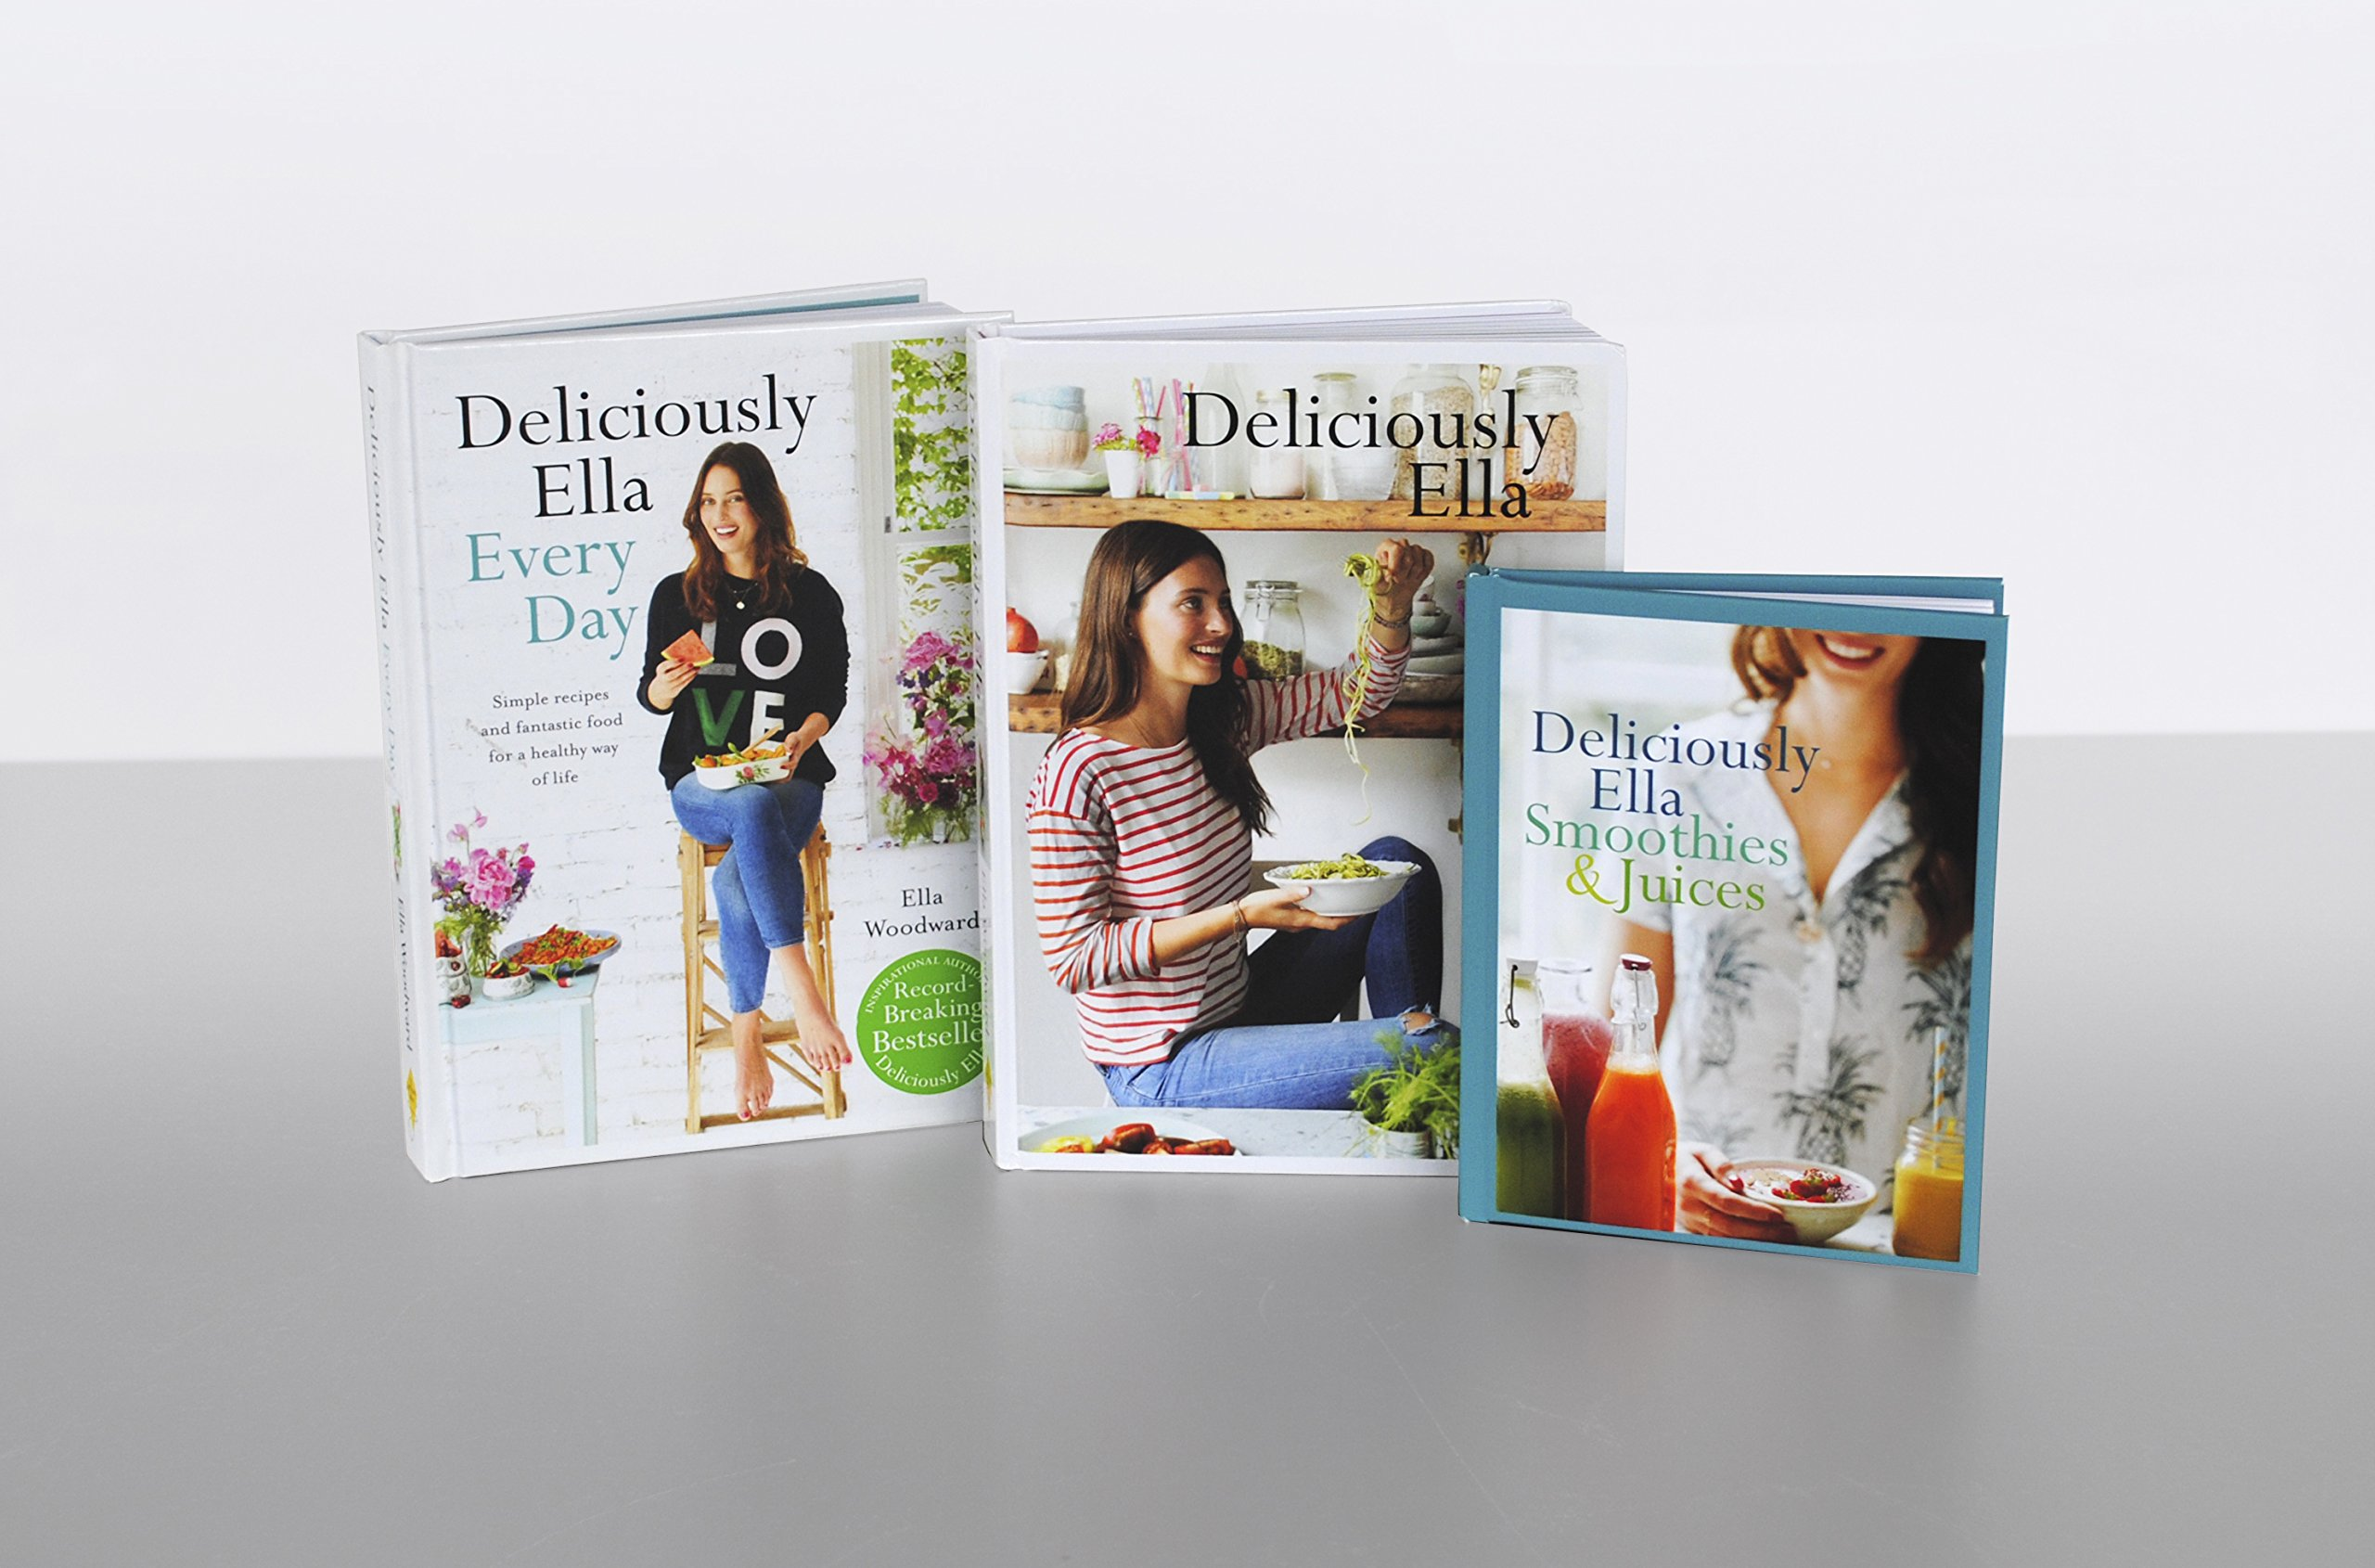 bacc11a91 Deliciously Ella  Smoothies   Juices  Bite-size Collection  Amazon.co.uk   Ella Mills (Woodward)  9781473647282  Books